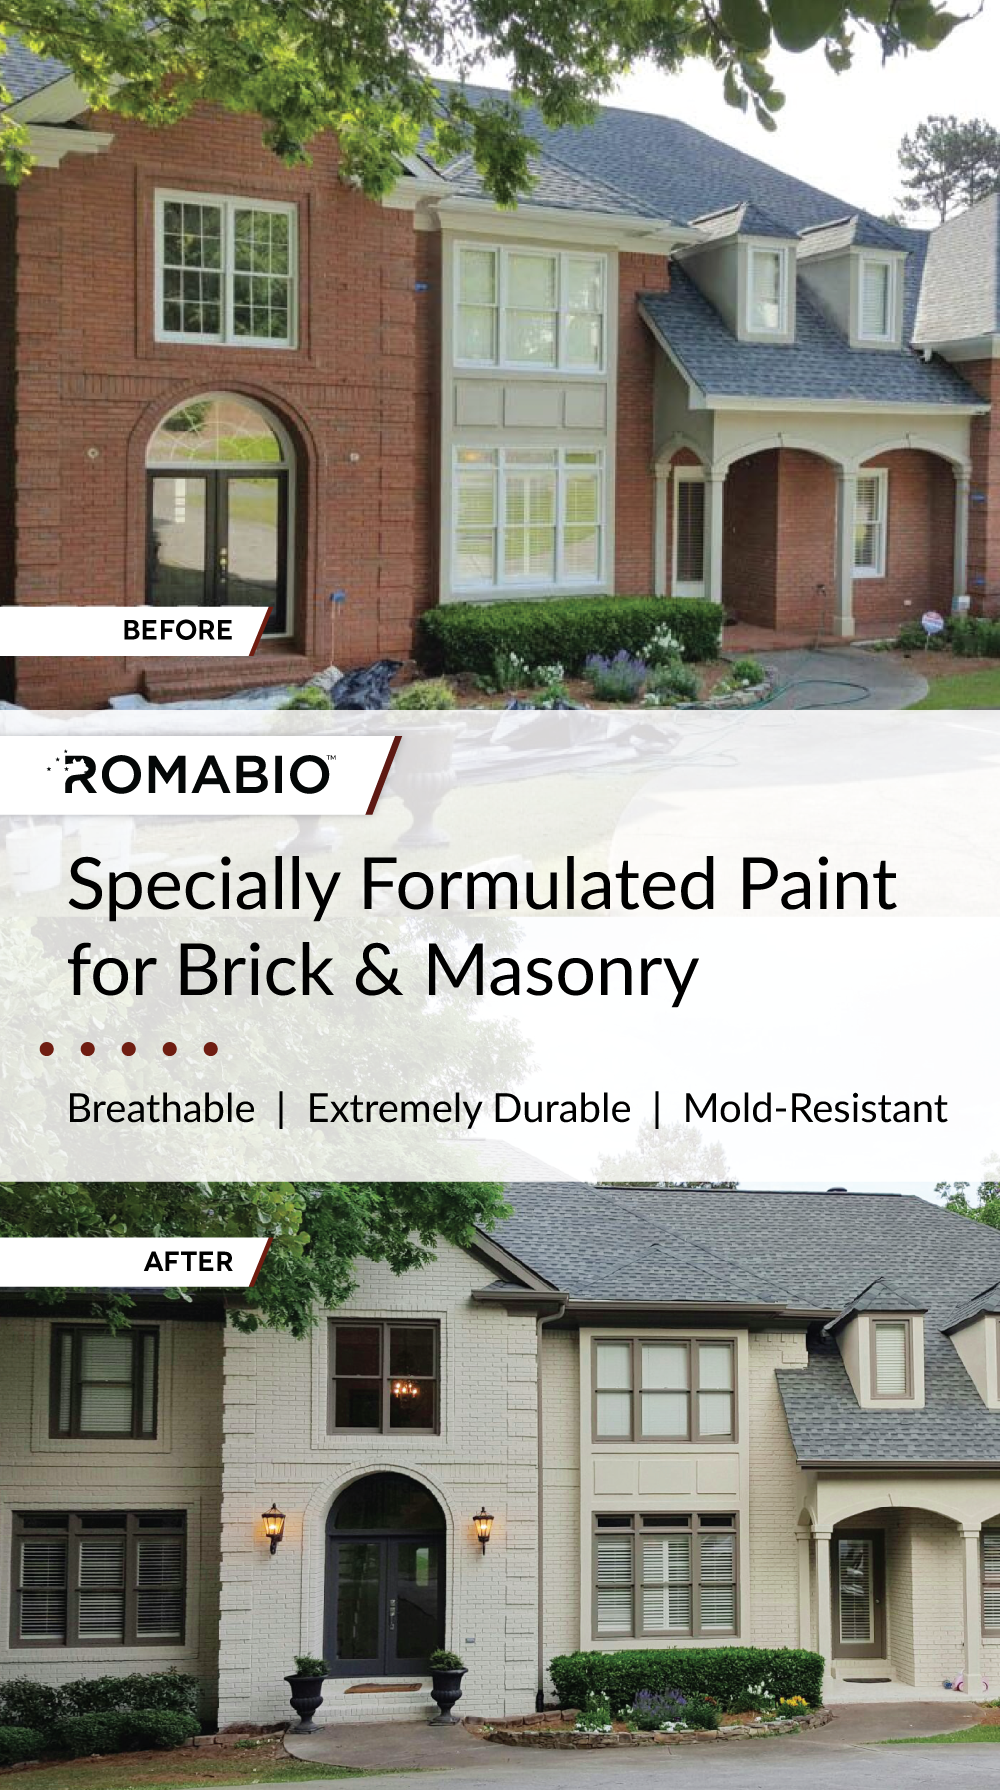 Pin von ROMABIO auf Brick and Masonry Paint | Pinterest